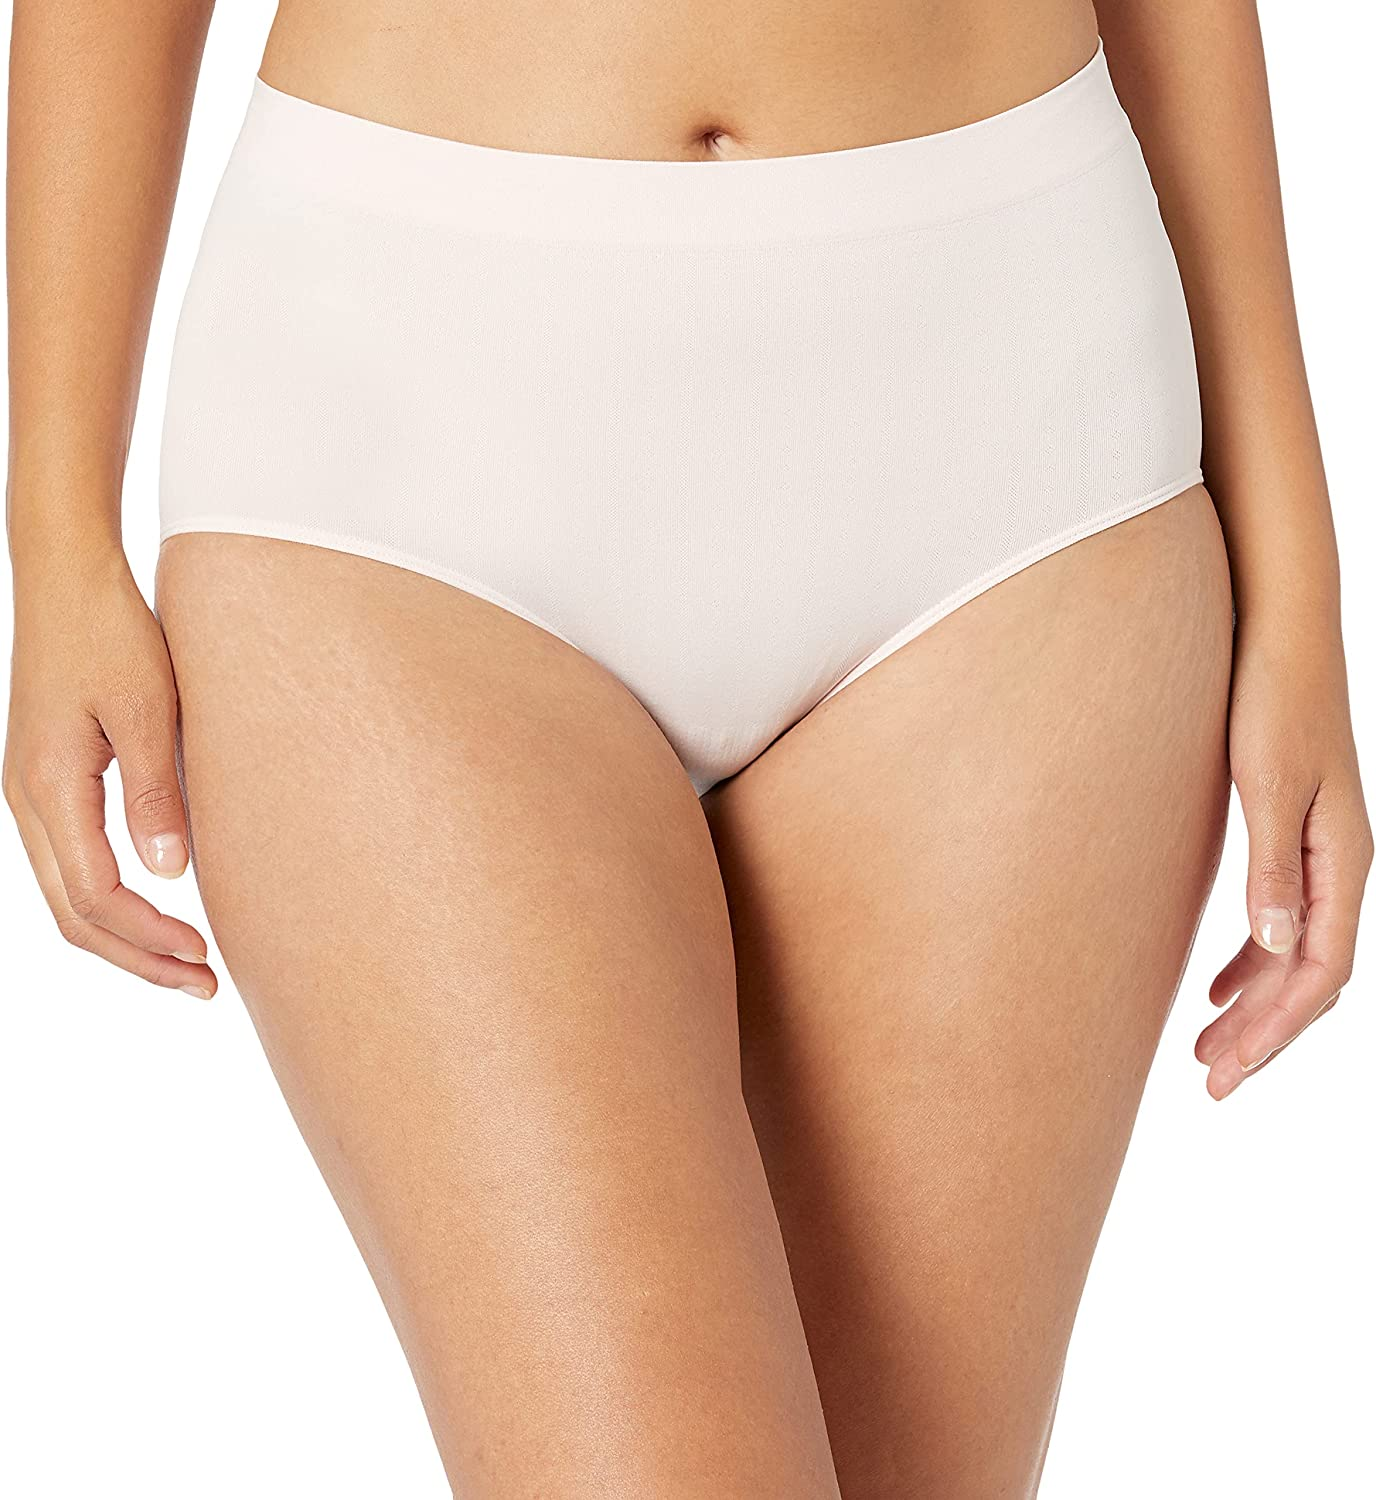 Bali Credence Women's One U Smoothing Briefs Classic Panty All-Around